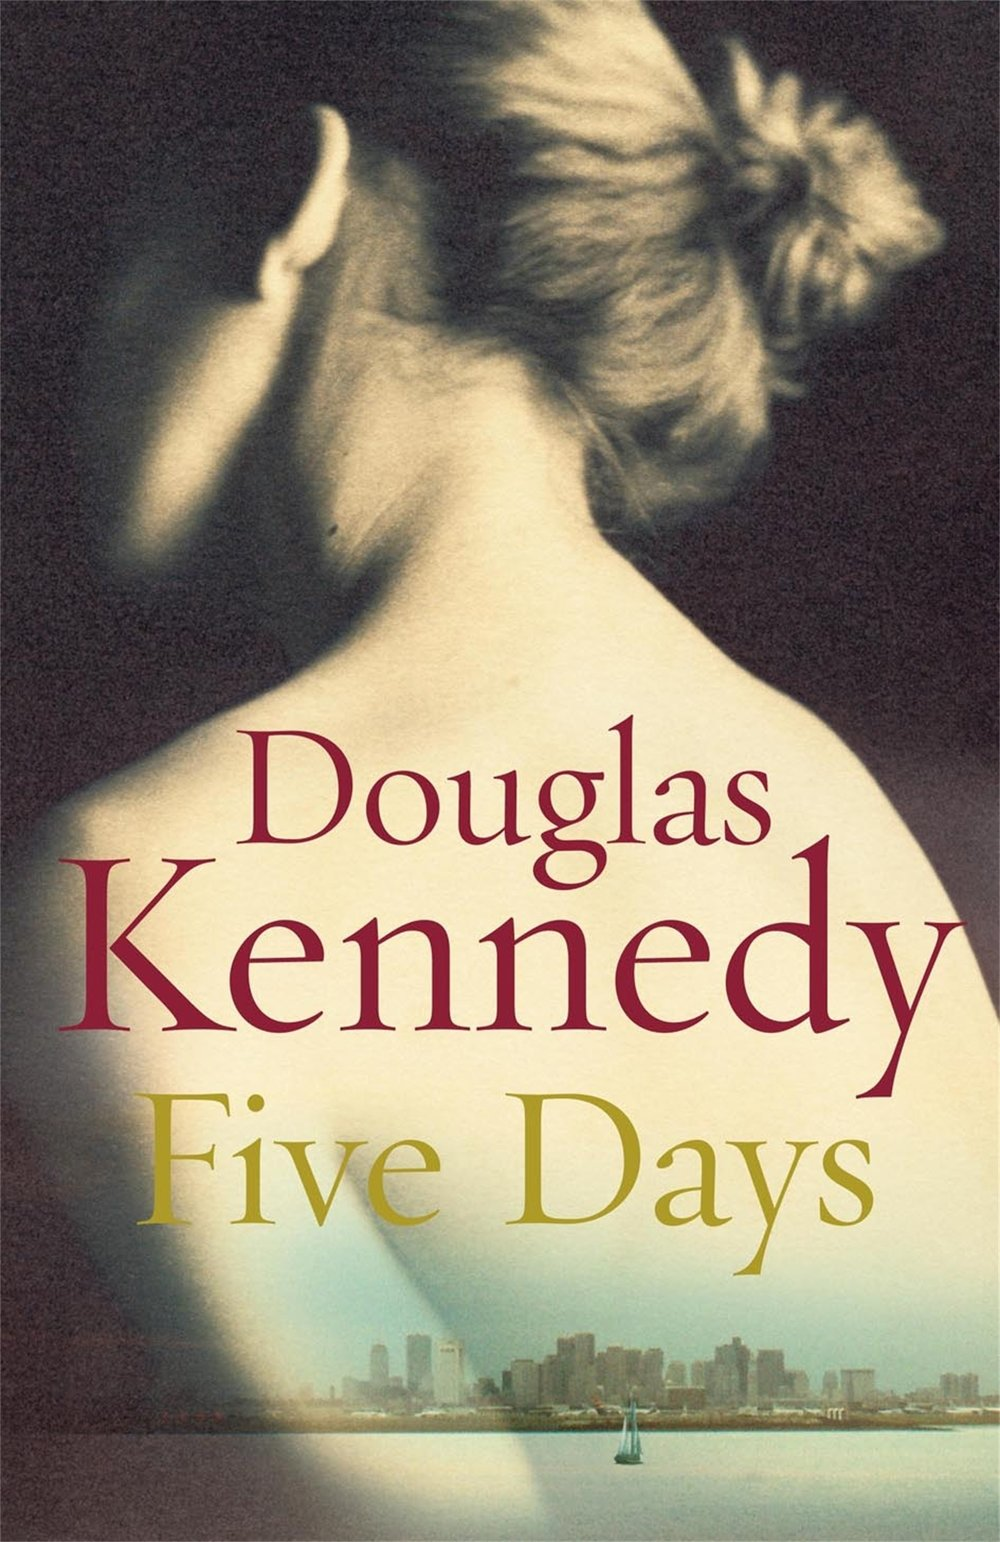 FIVE DAYS - When an opportunity arises to attend a weekend medical conference in Boston, Laura jumps at this respite from home. While checking in, she meets a man as gray and uninspired as her drab hotel room. Richard is an outwardly dull, fifty something insurance salesman. But during a chance second encounter, Laura discovers him to be surprisingly complex and thoughtful, someone who, like herself, is grappling with the same big questions about decisions made and the human capacity for self-entrapment.